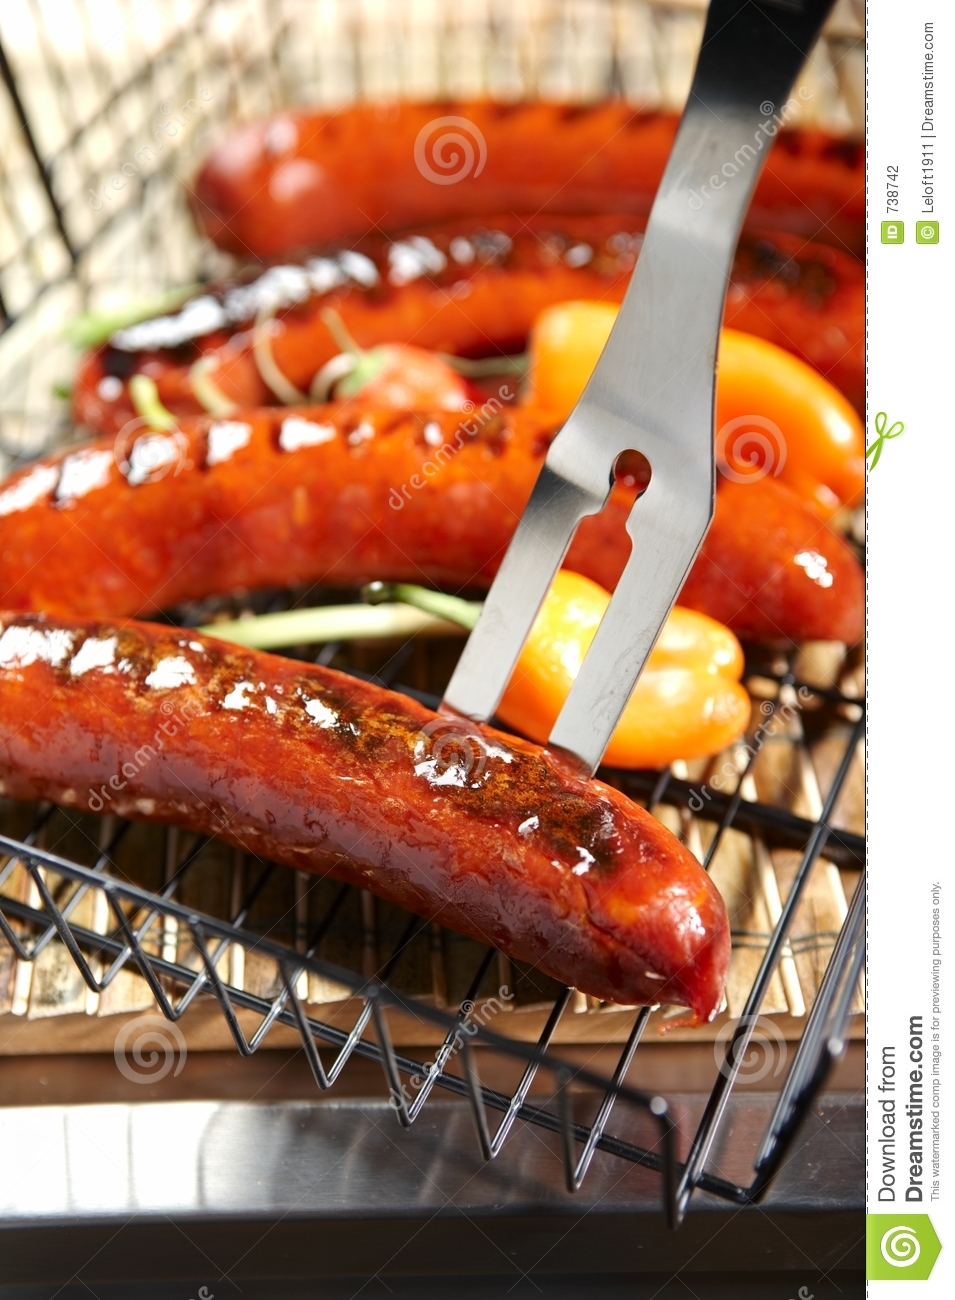 BBQ - hot dogs